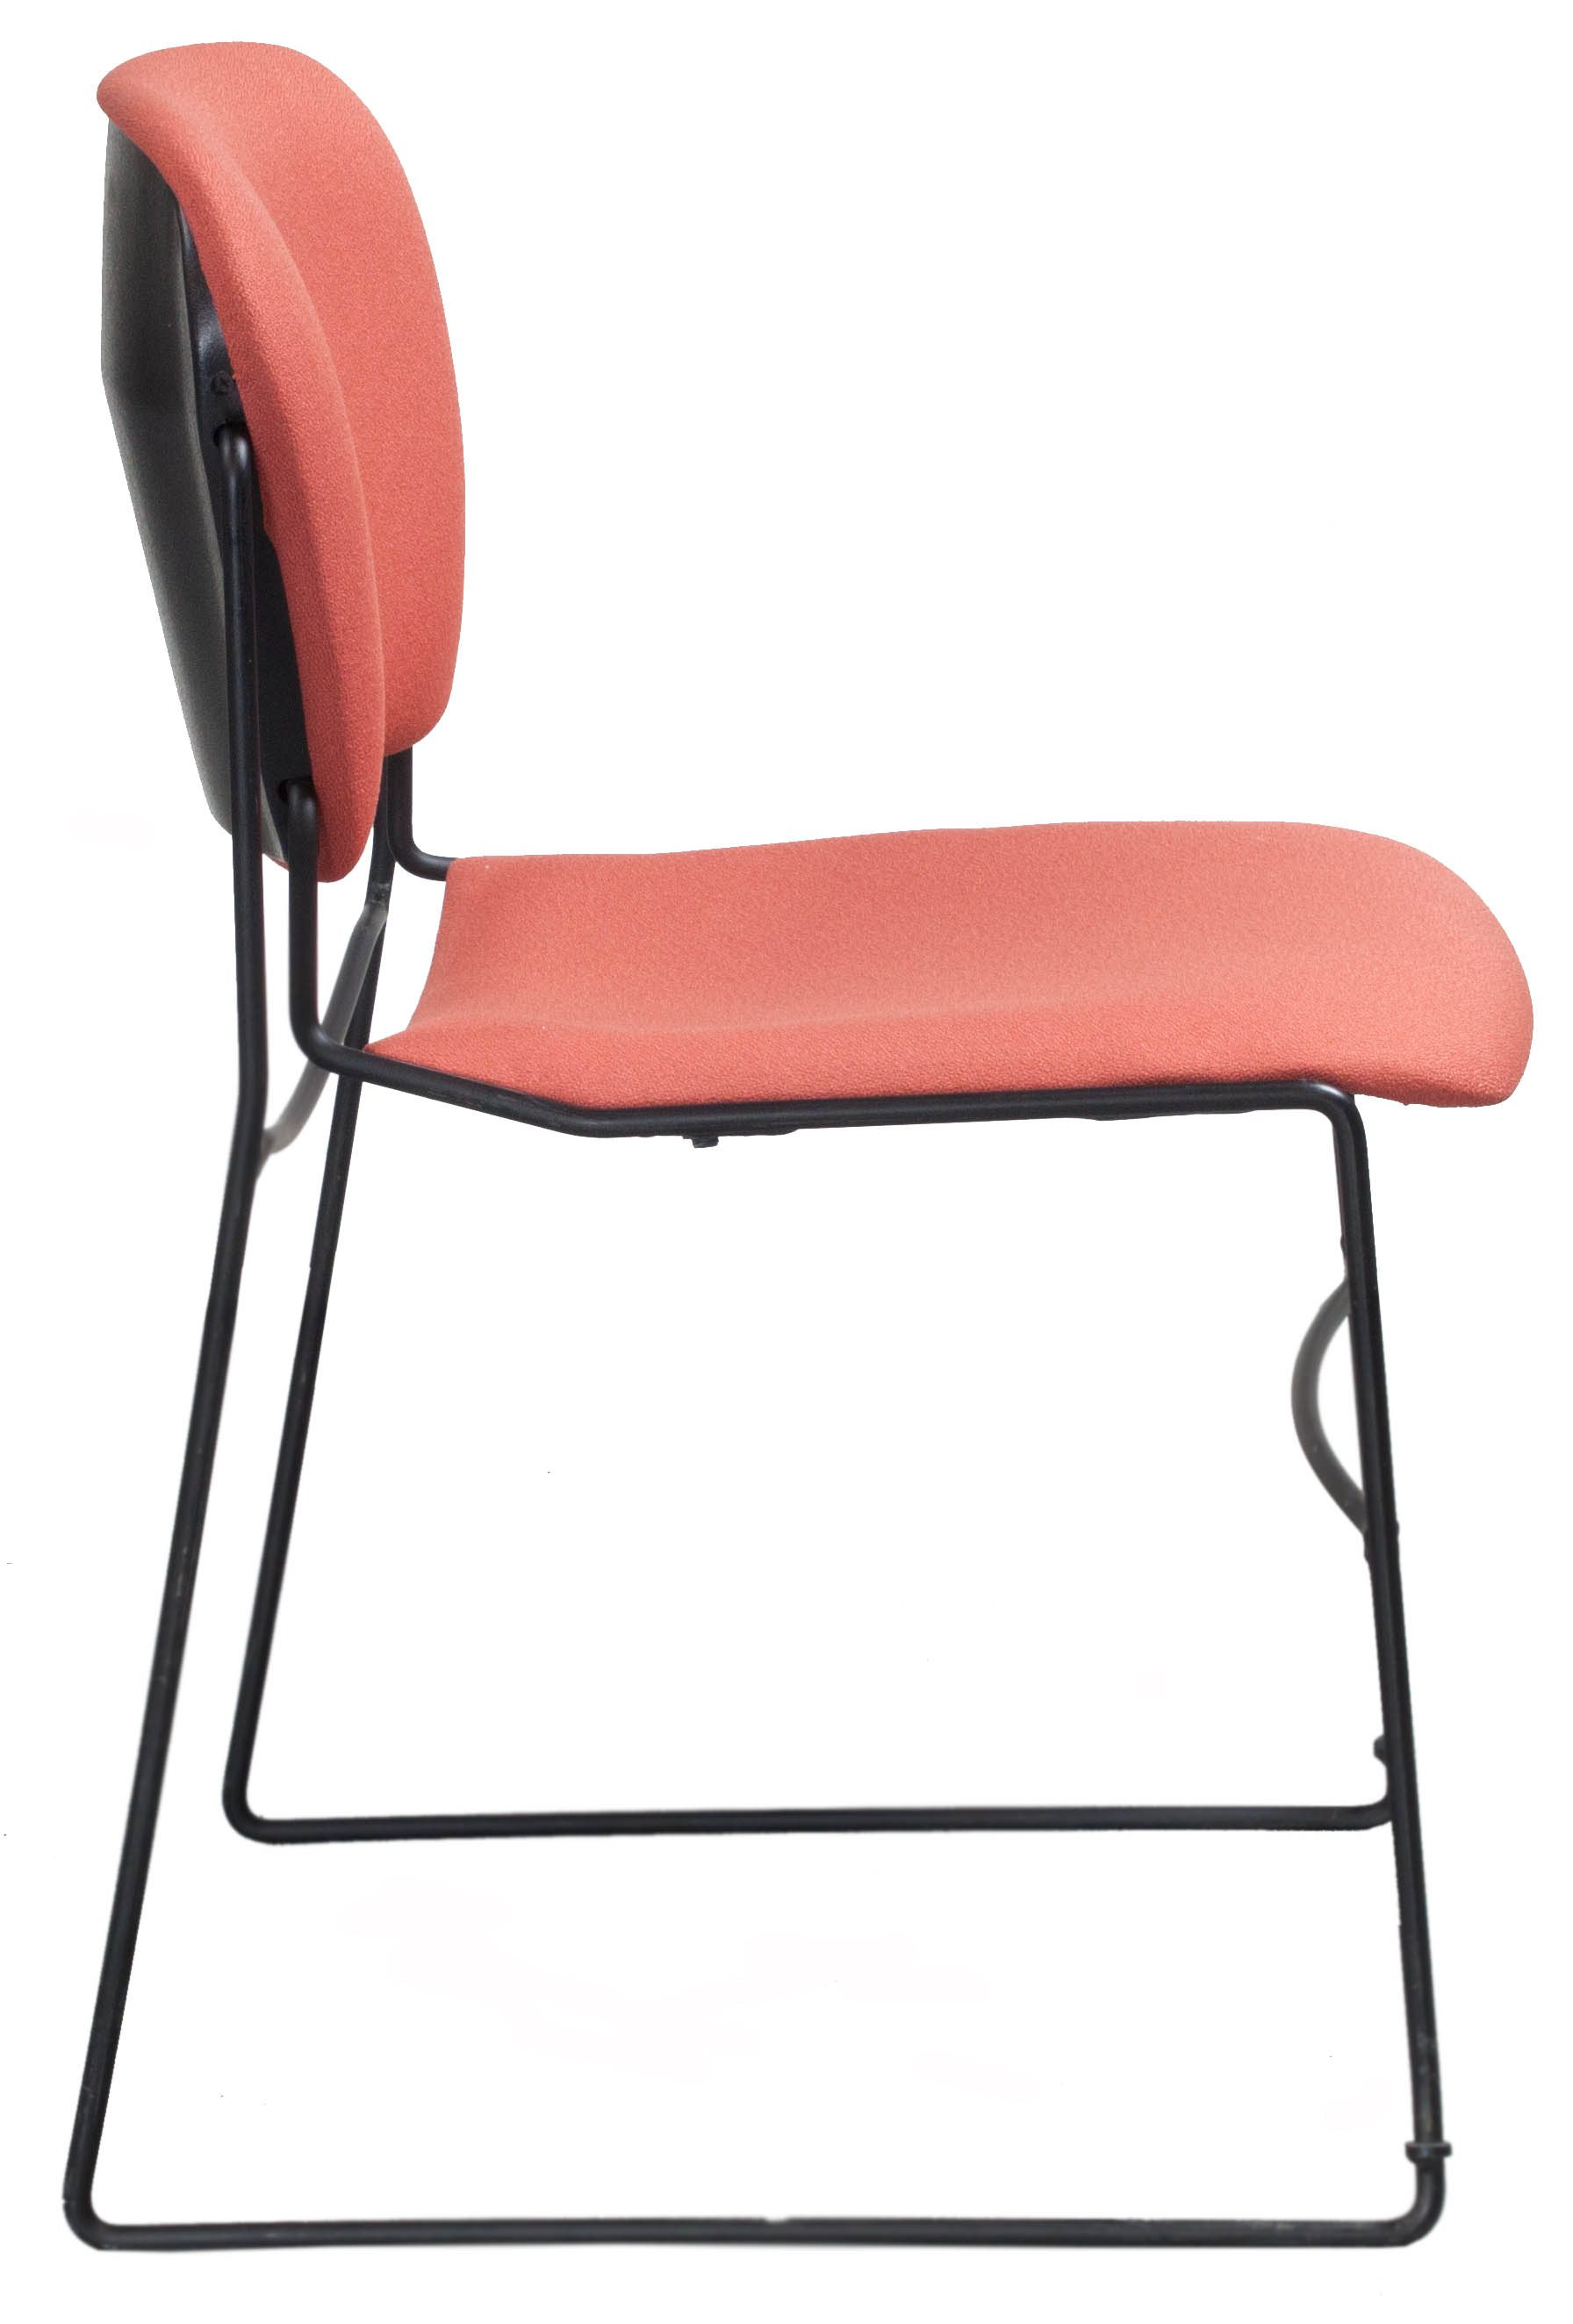 Coral Chair Ki Perry Used Stack Chair Coral National Office